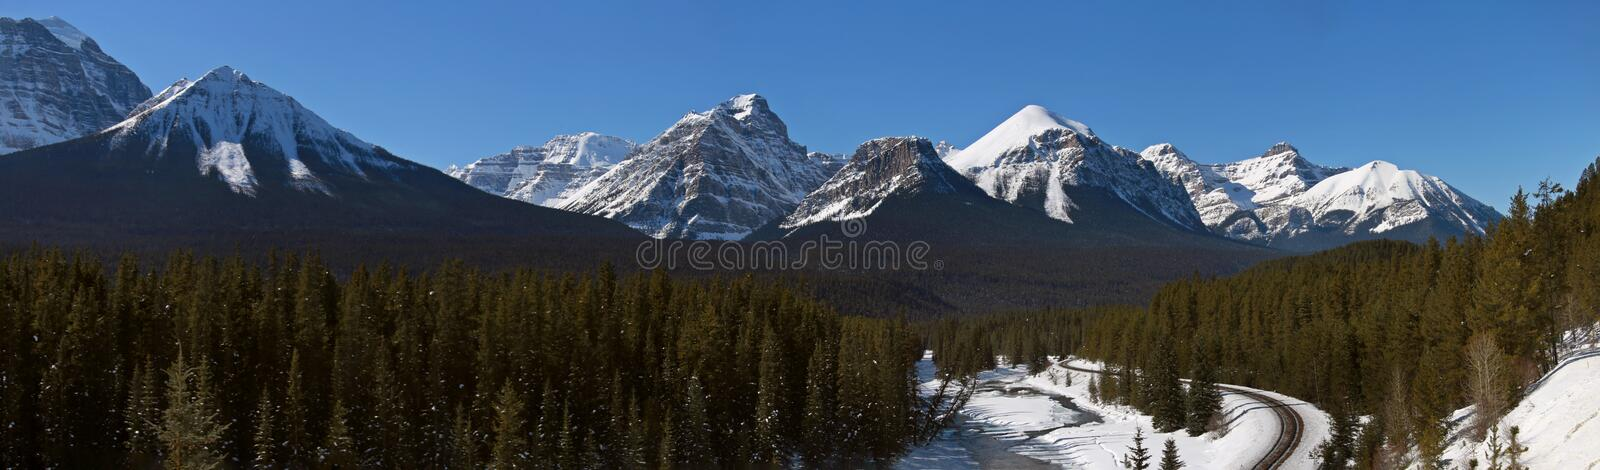 Lake Louise Rocky Mountains. Train Tracks Morants Curve Canada royalty free stock photo